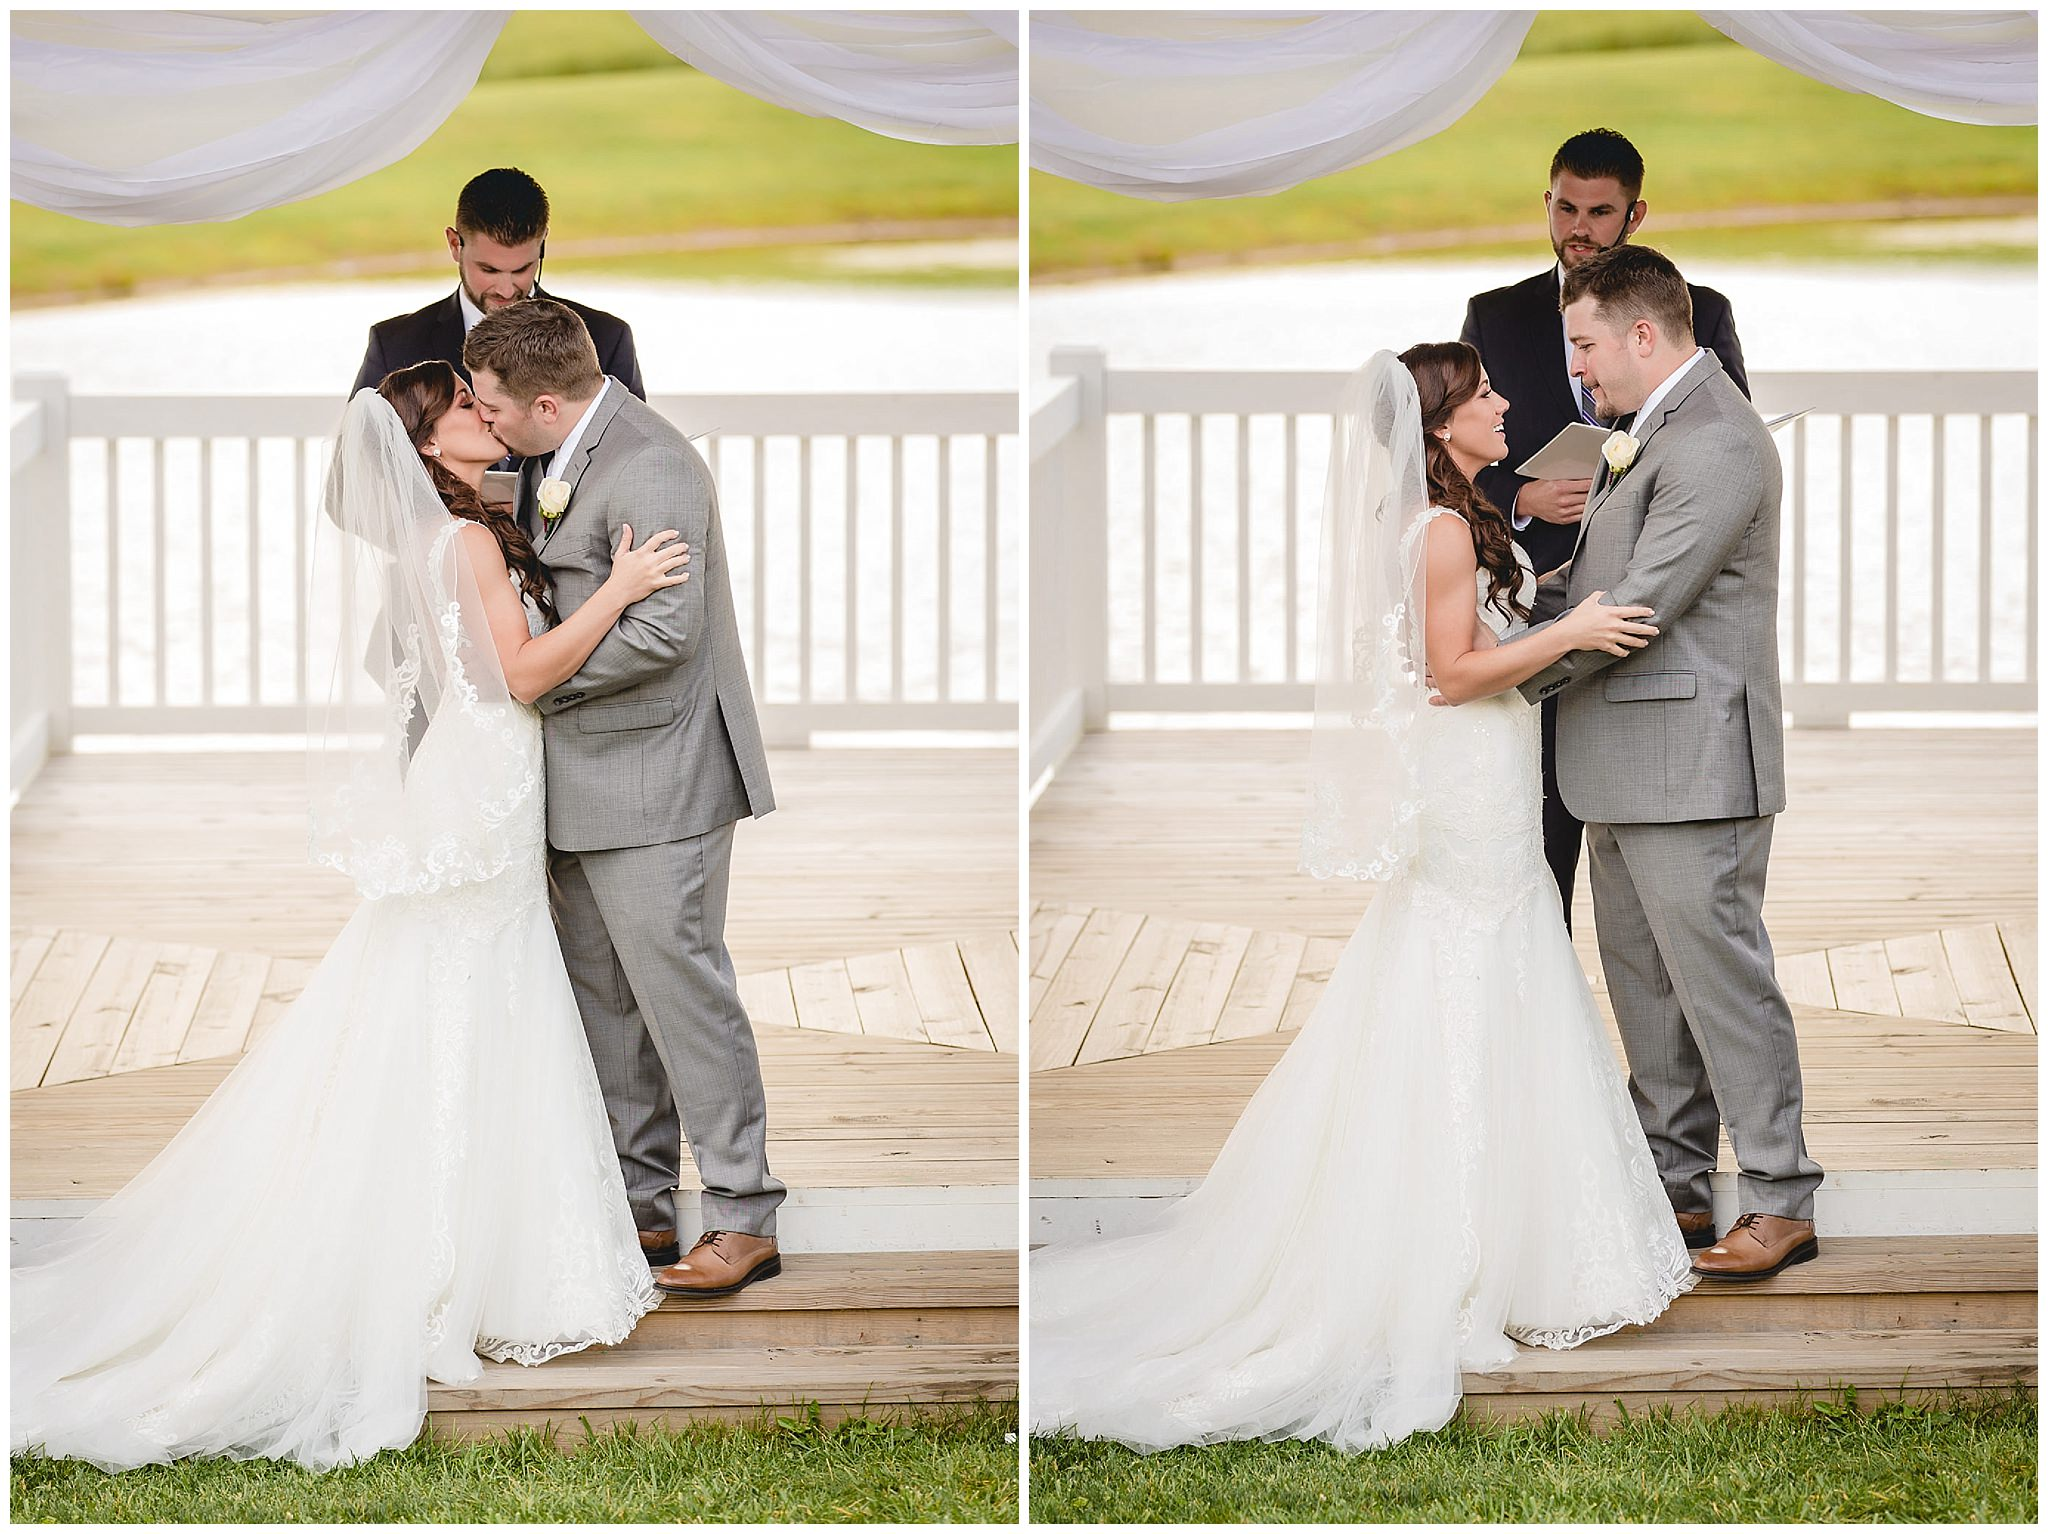 Bride and groom share a first kiss at their White Barn wedding ceremony